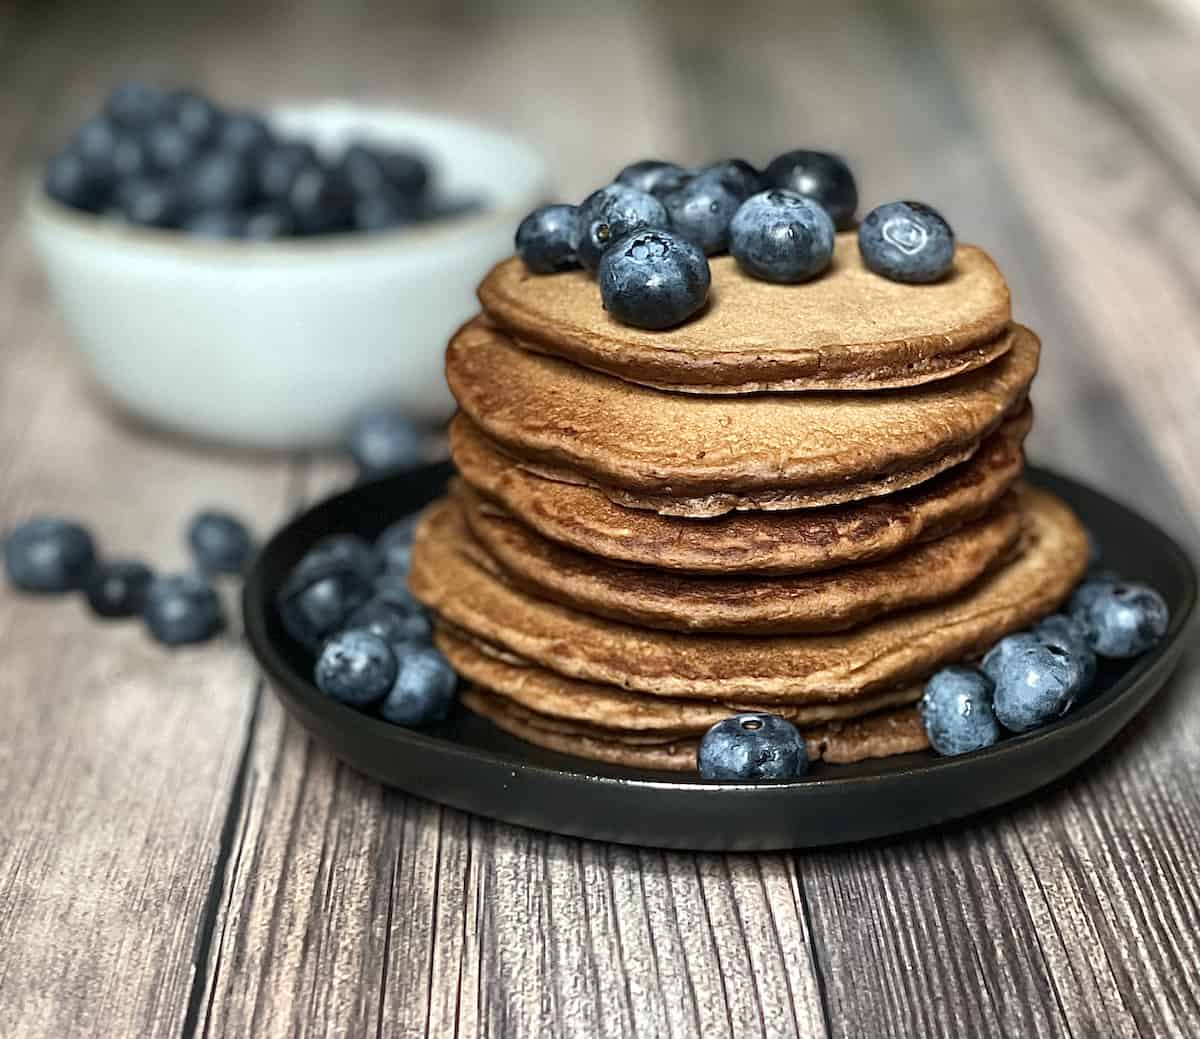 stack of pancakes topped with blueberries